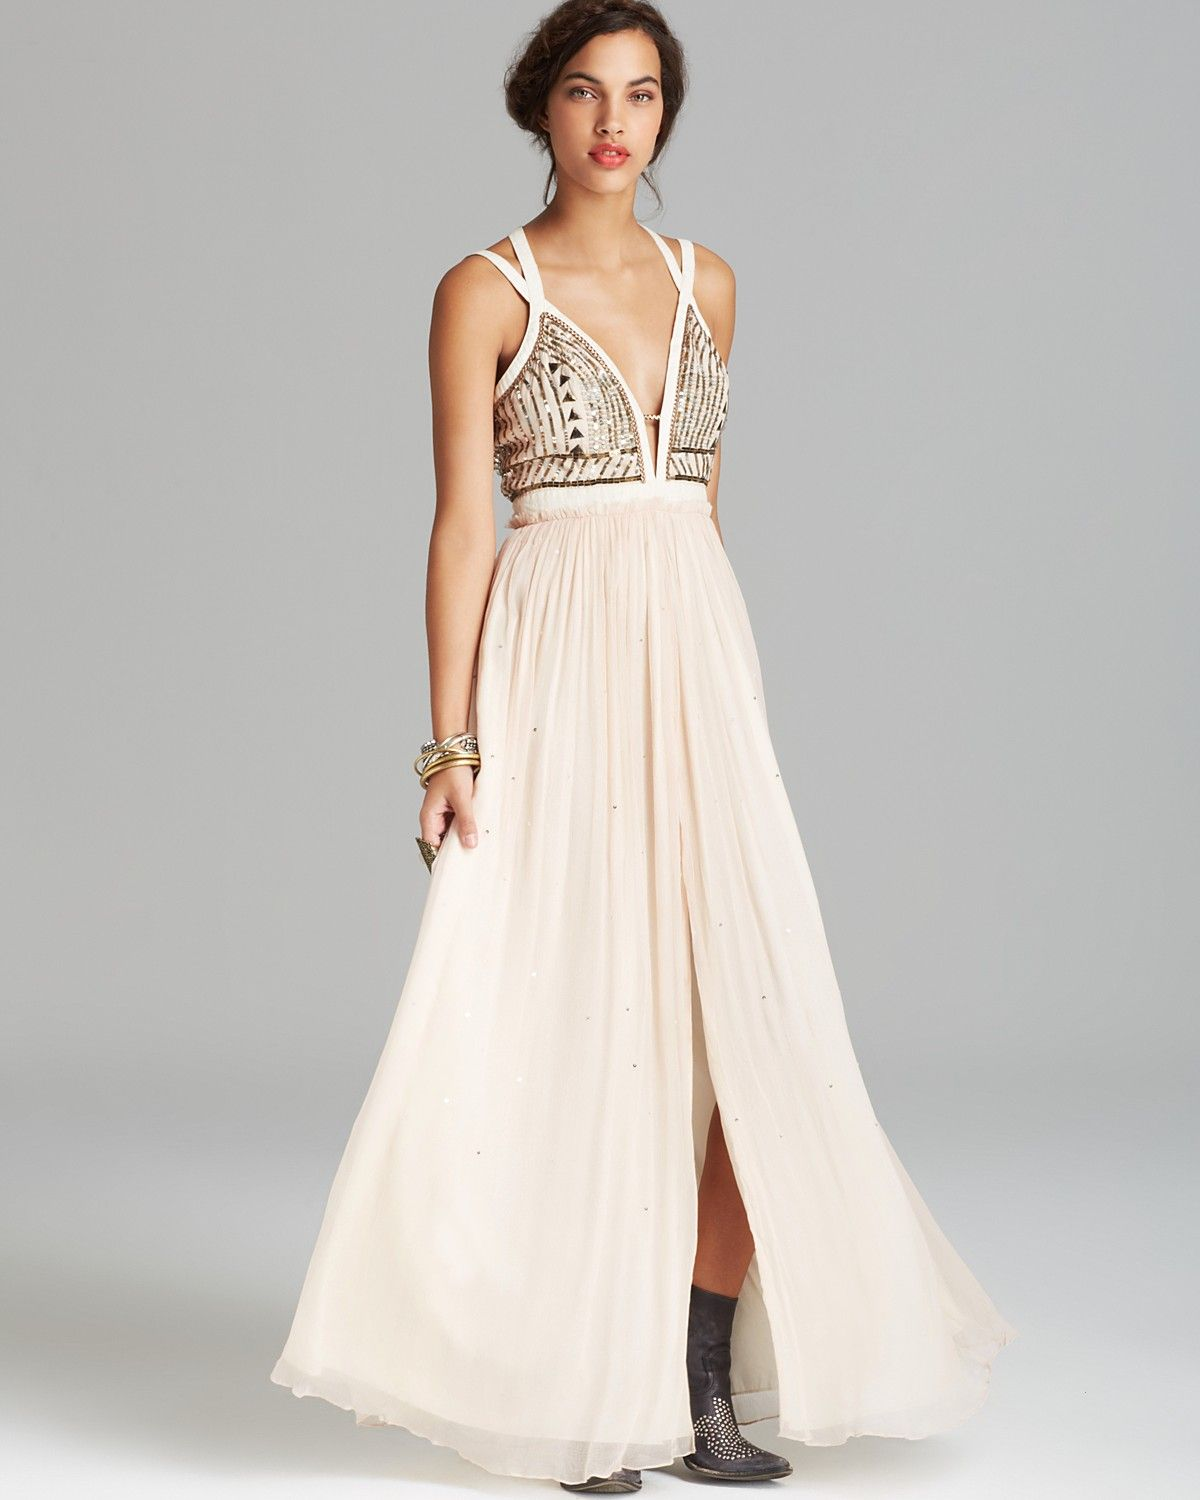 Free People Maxi Dress - Golden Chalice | All Gown Up | Pinterest ...